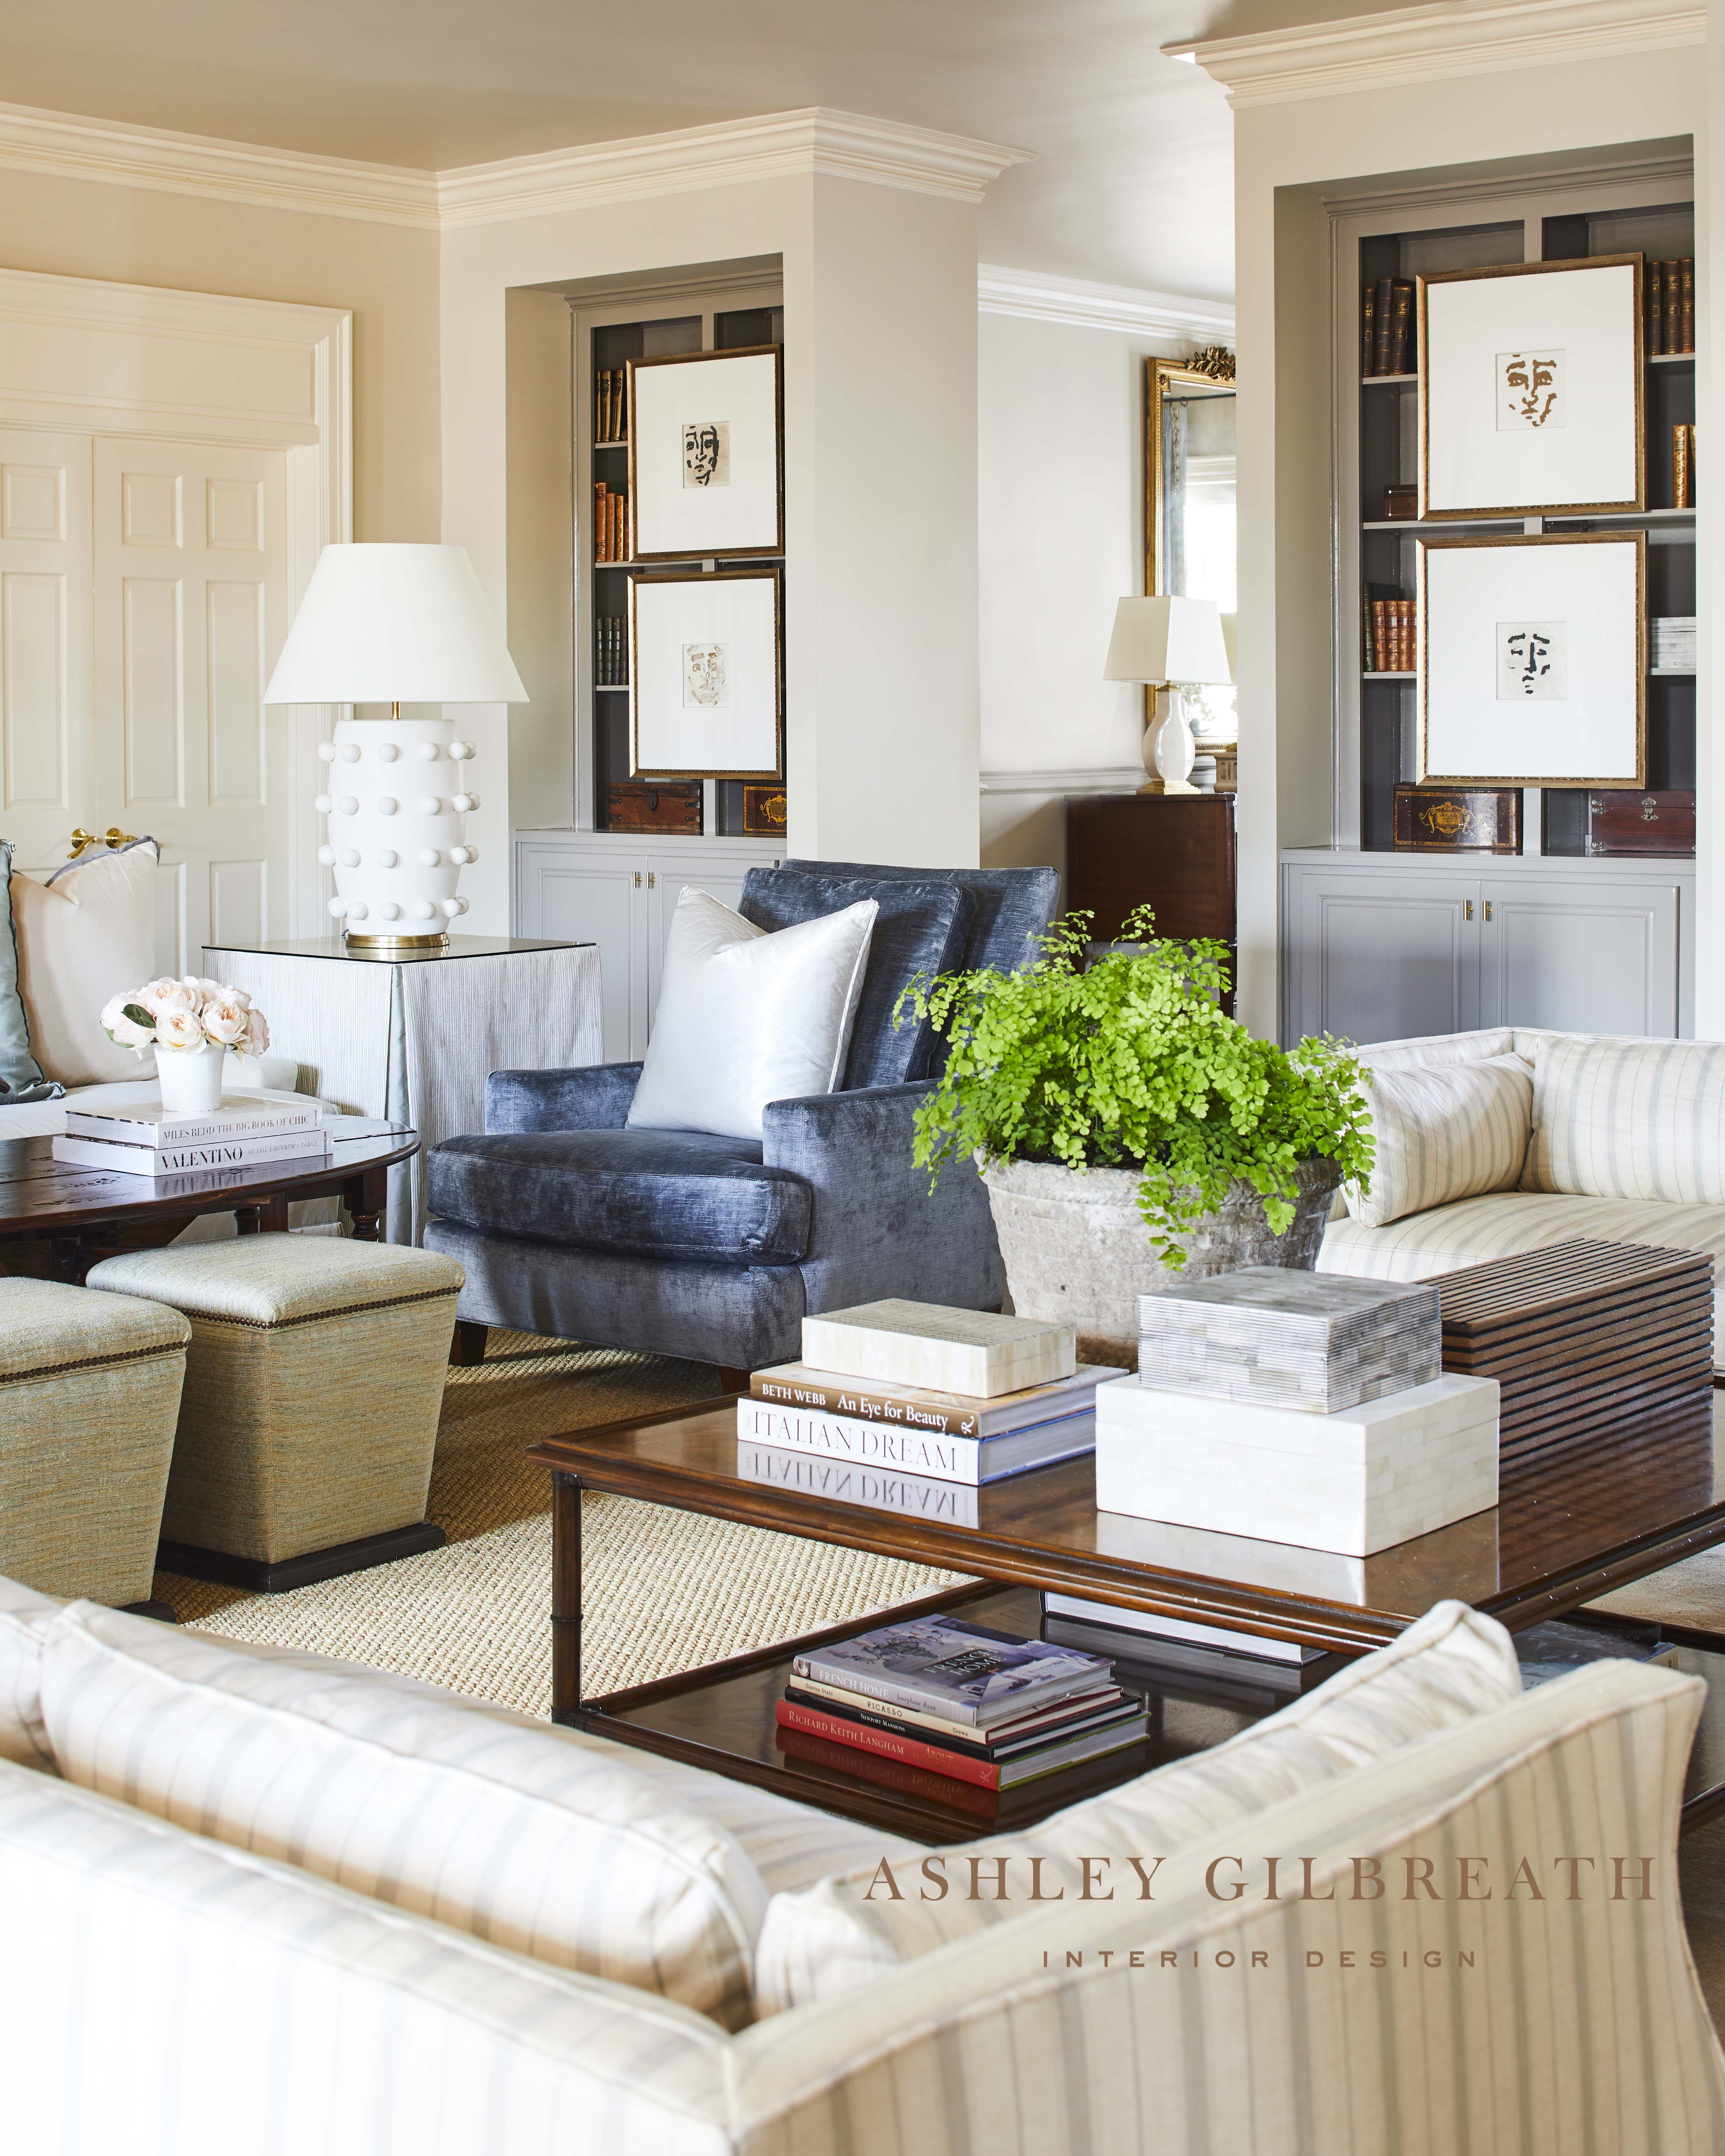 View The Projects Of Ashley Gilbreath Interior Design Interior